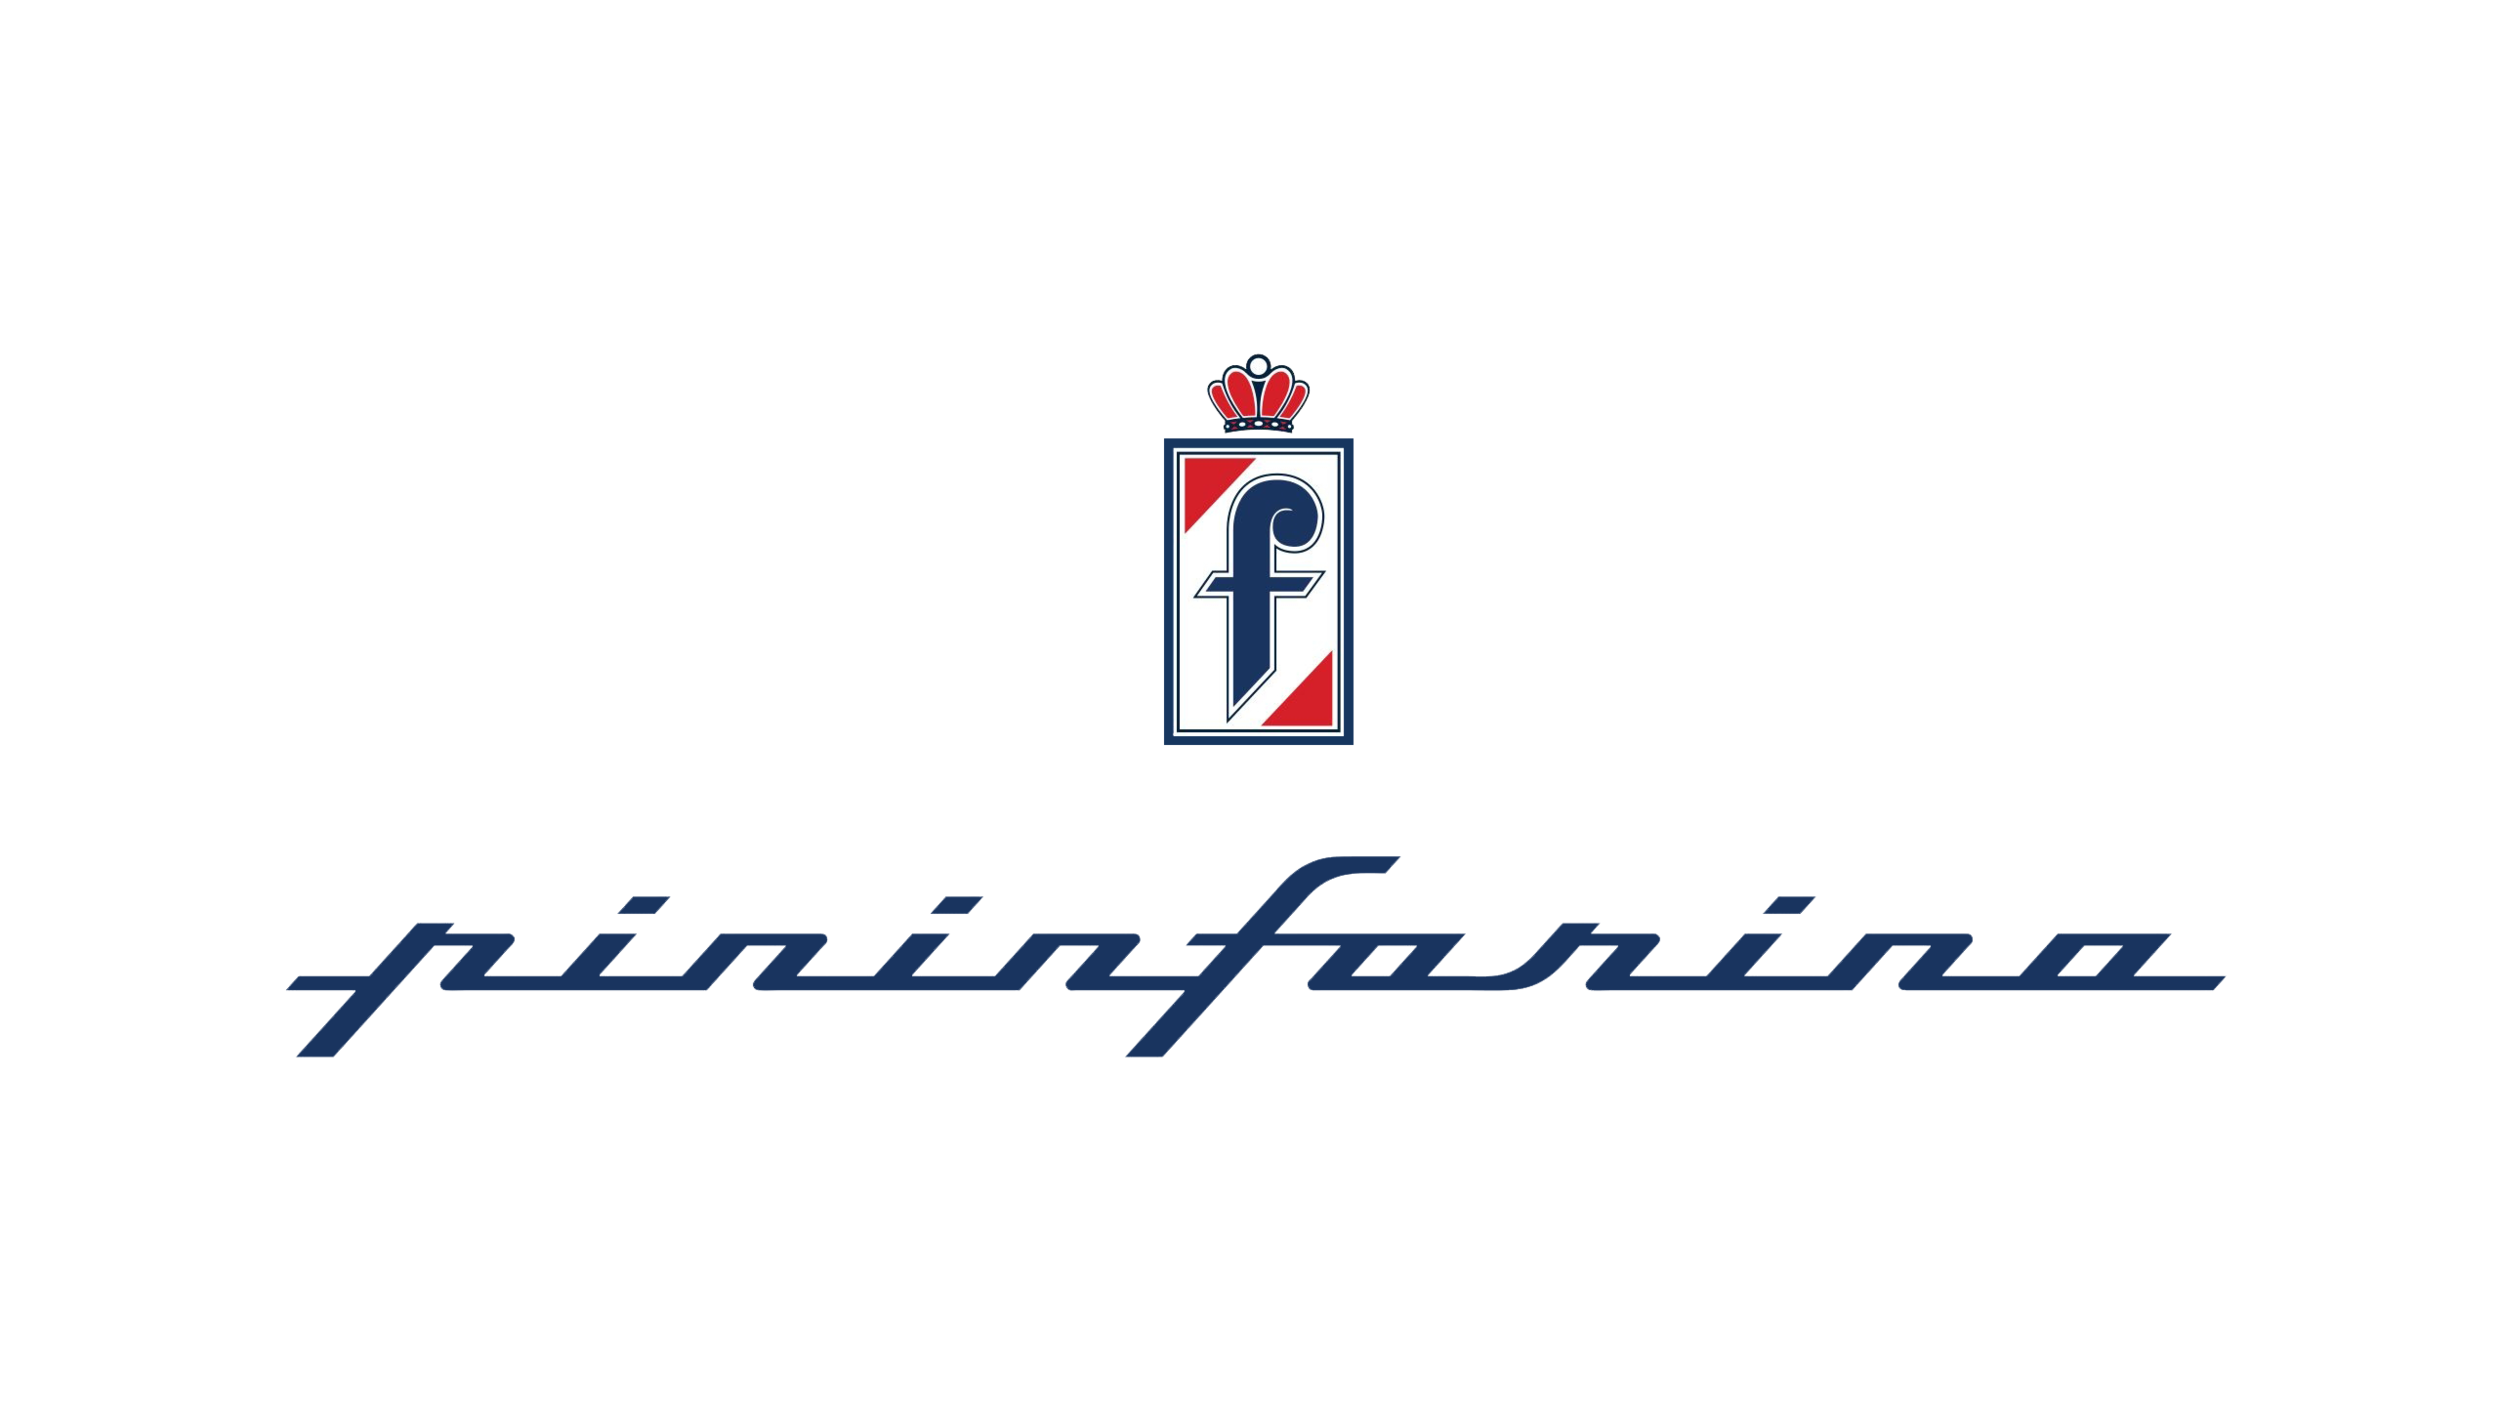 Copy of Copy of Copy of Copy of Pininfarina - Italian Design and Engineering